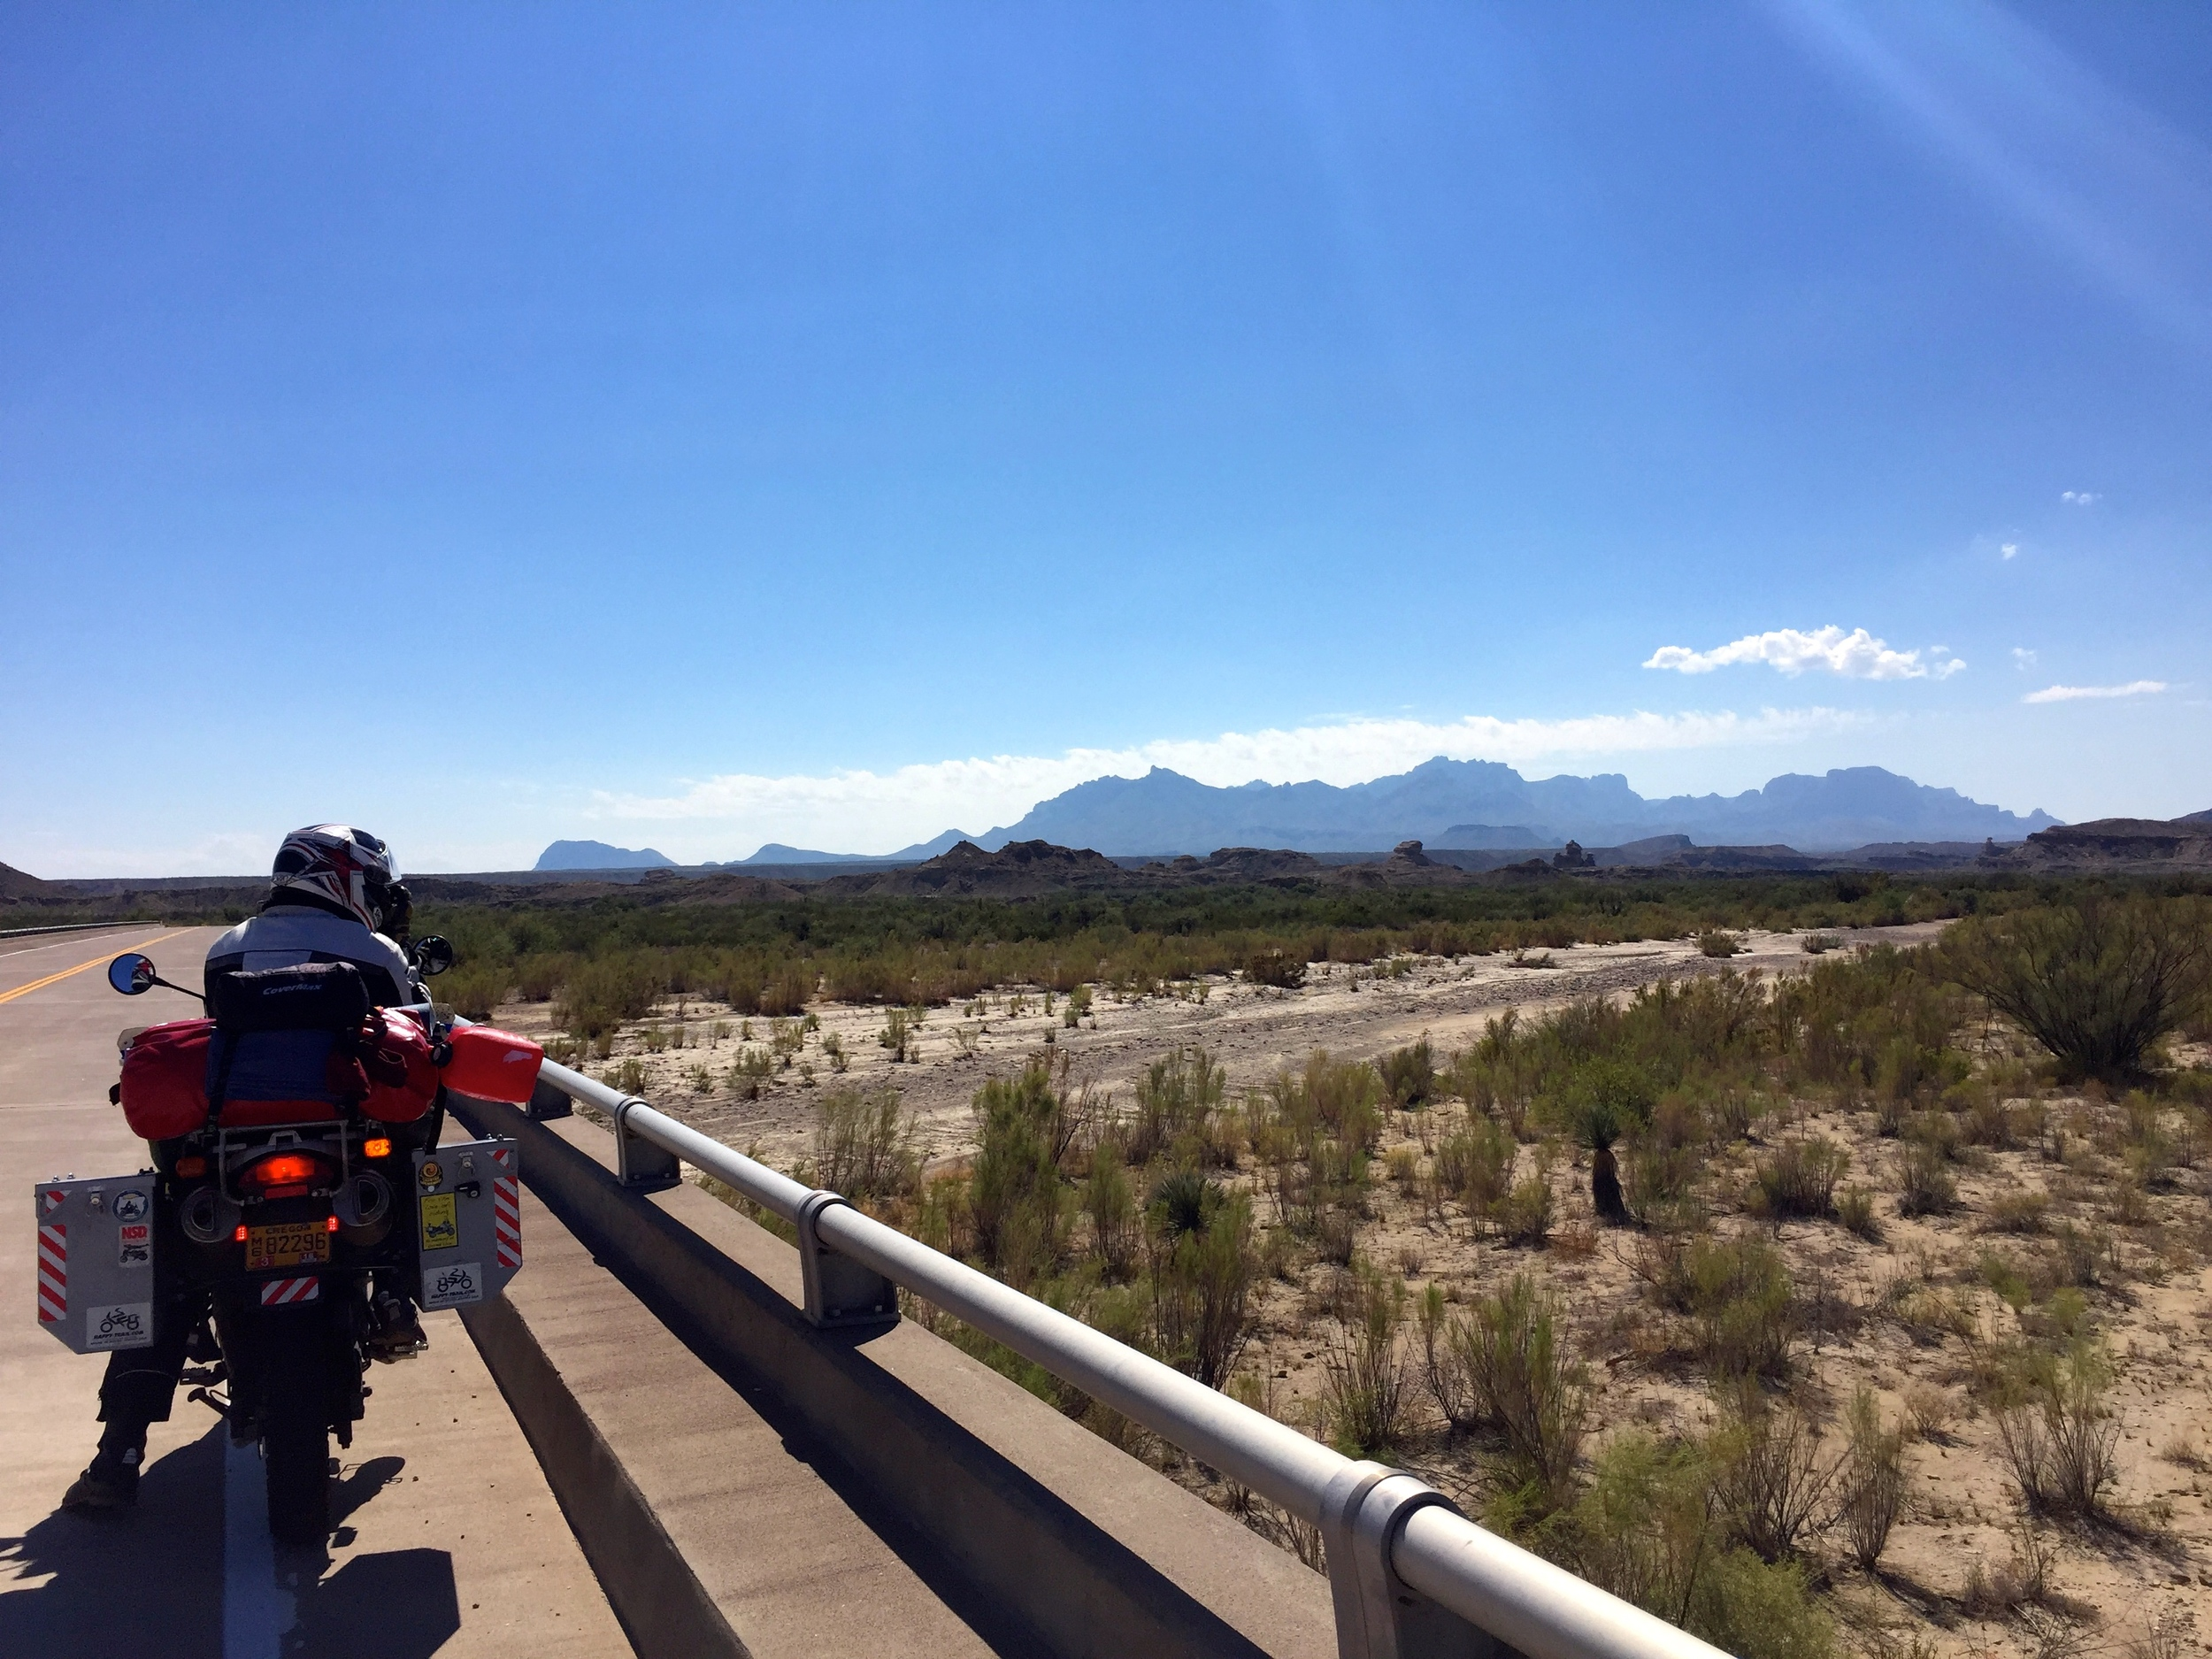 Heading in to Big Bend.